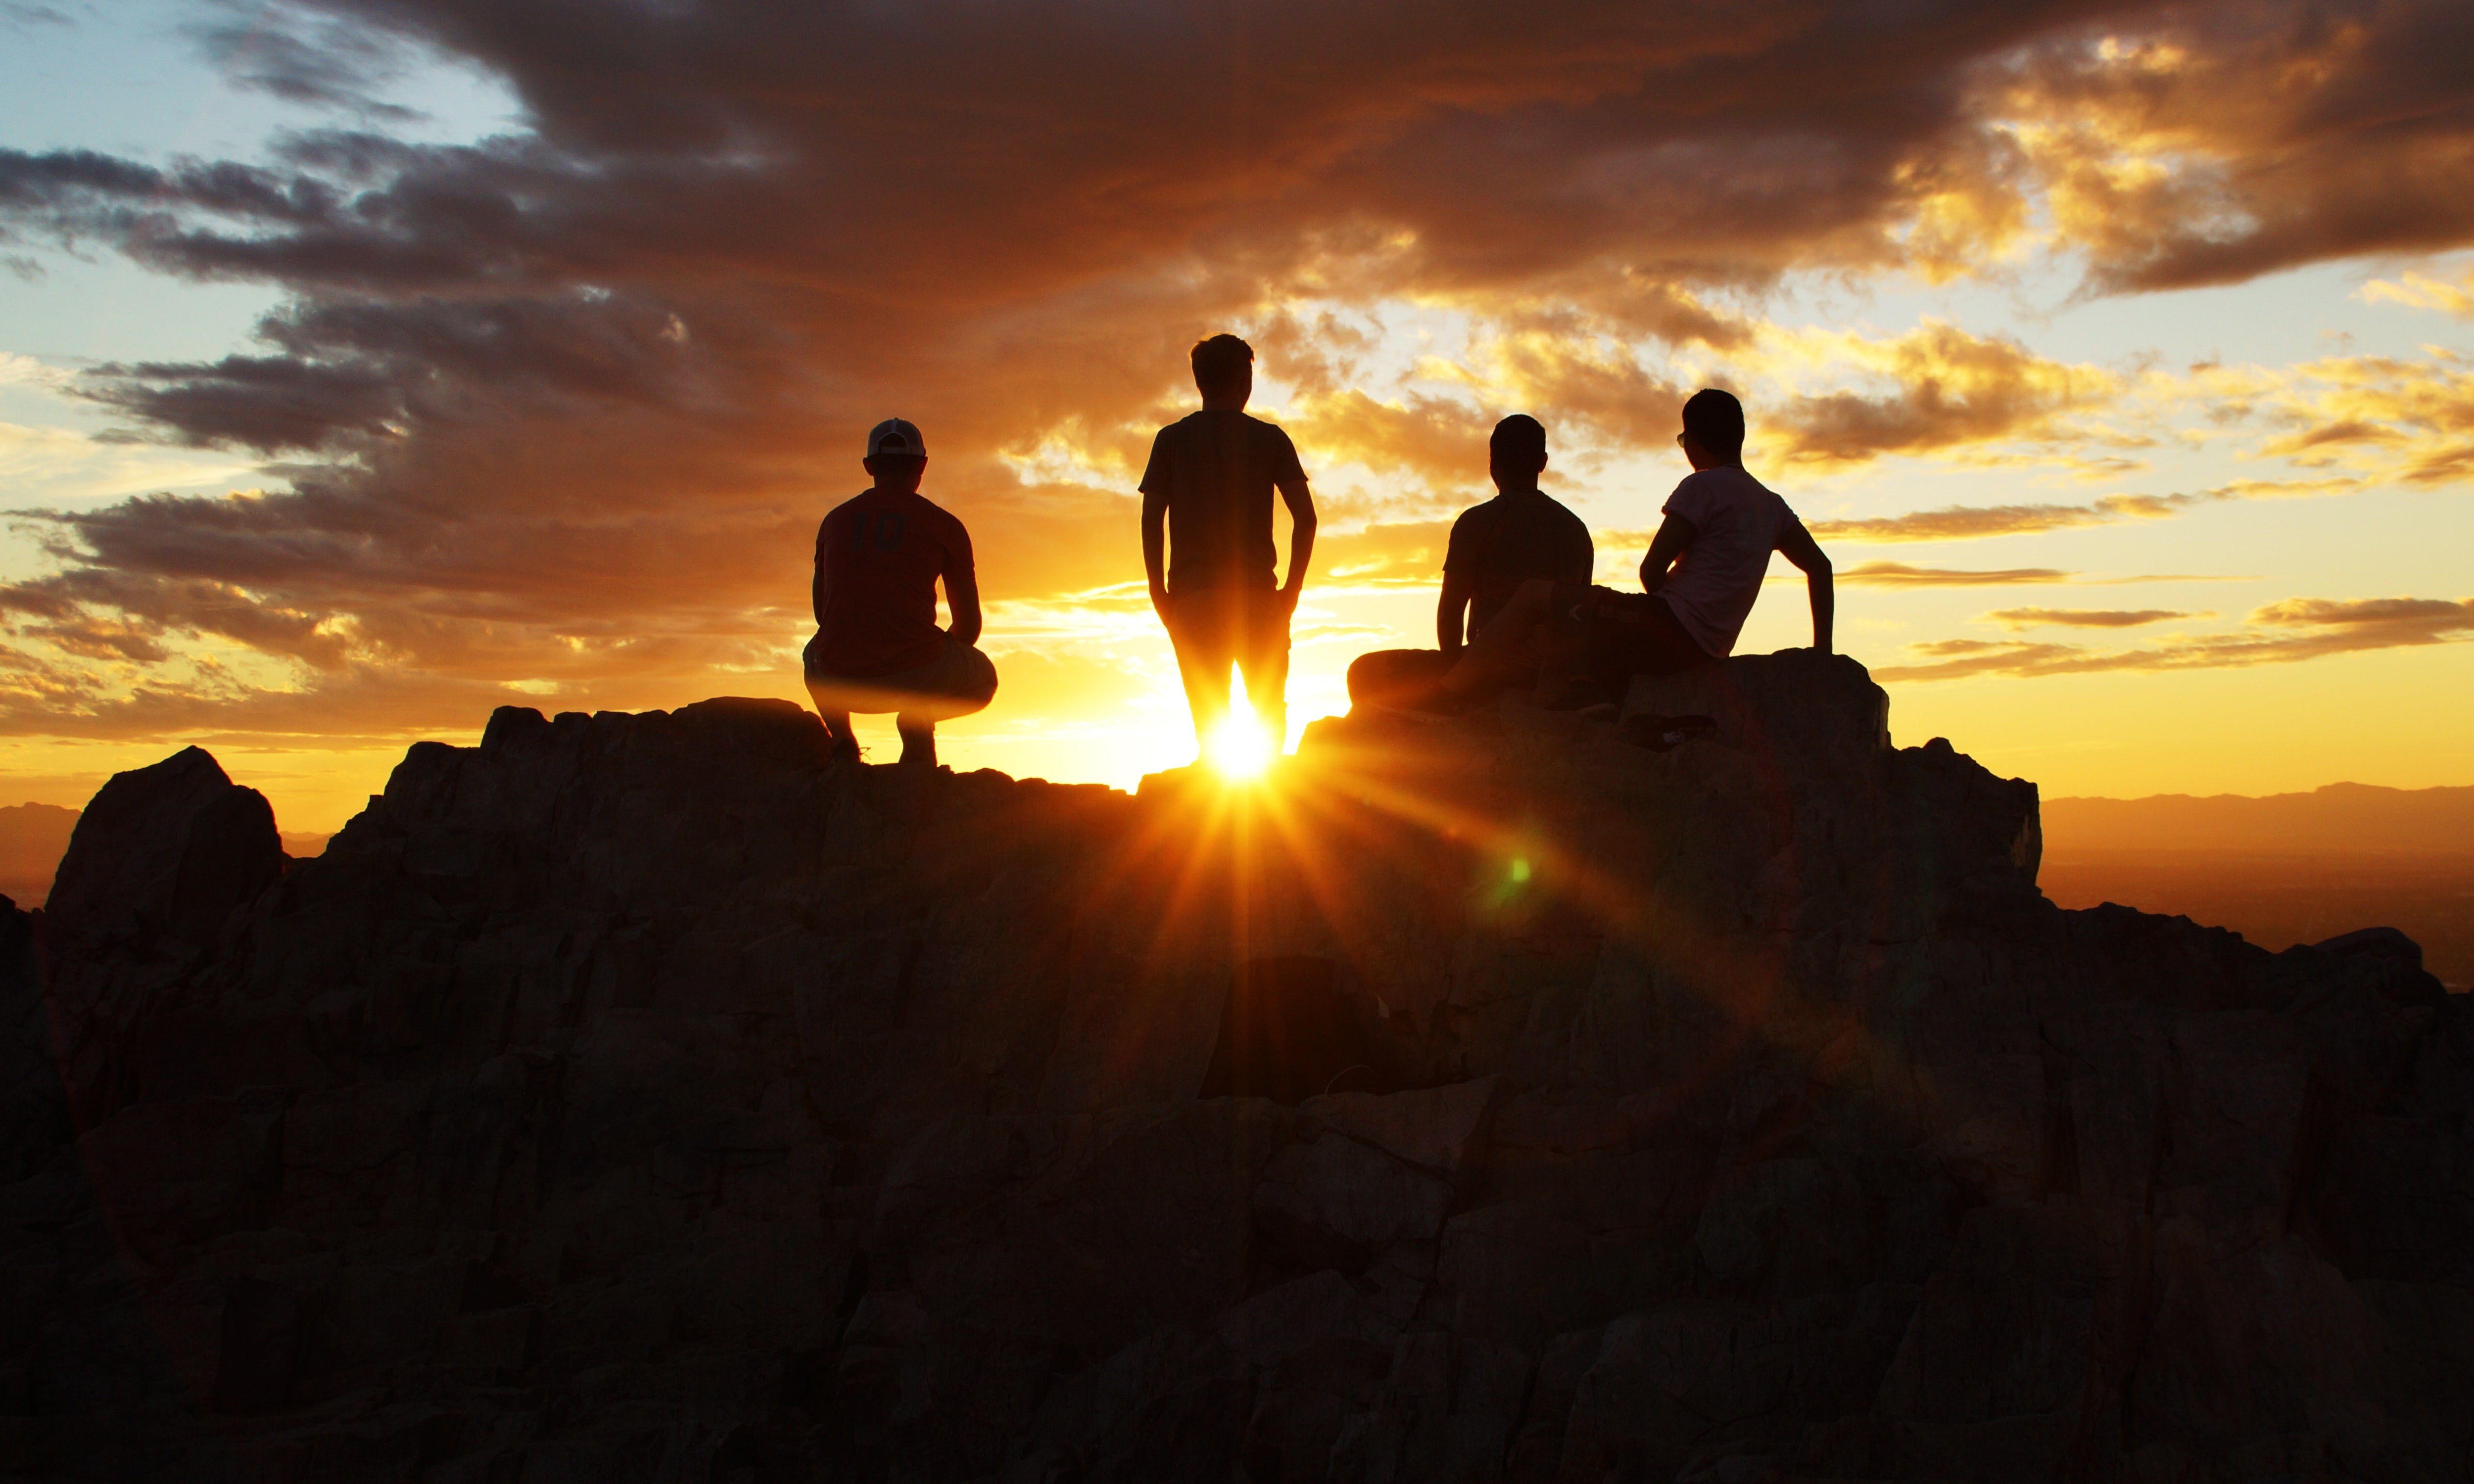 silhouette photography of four person on cliff during sunset